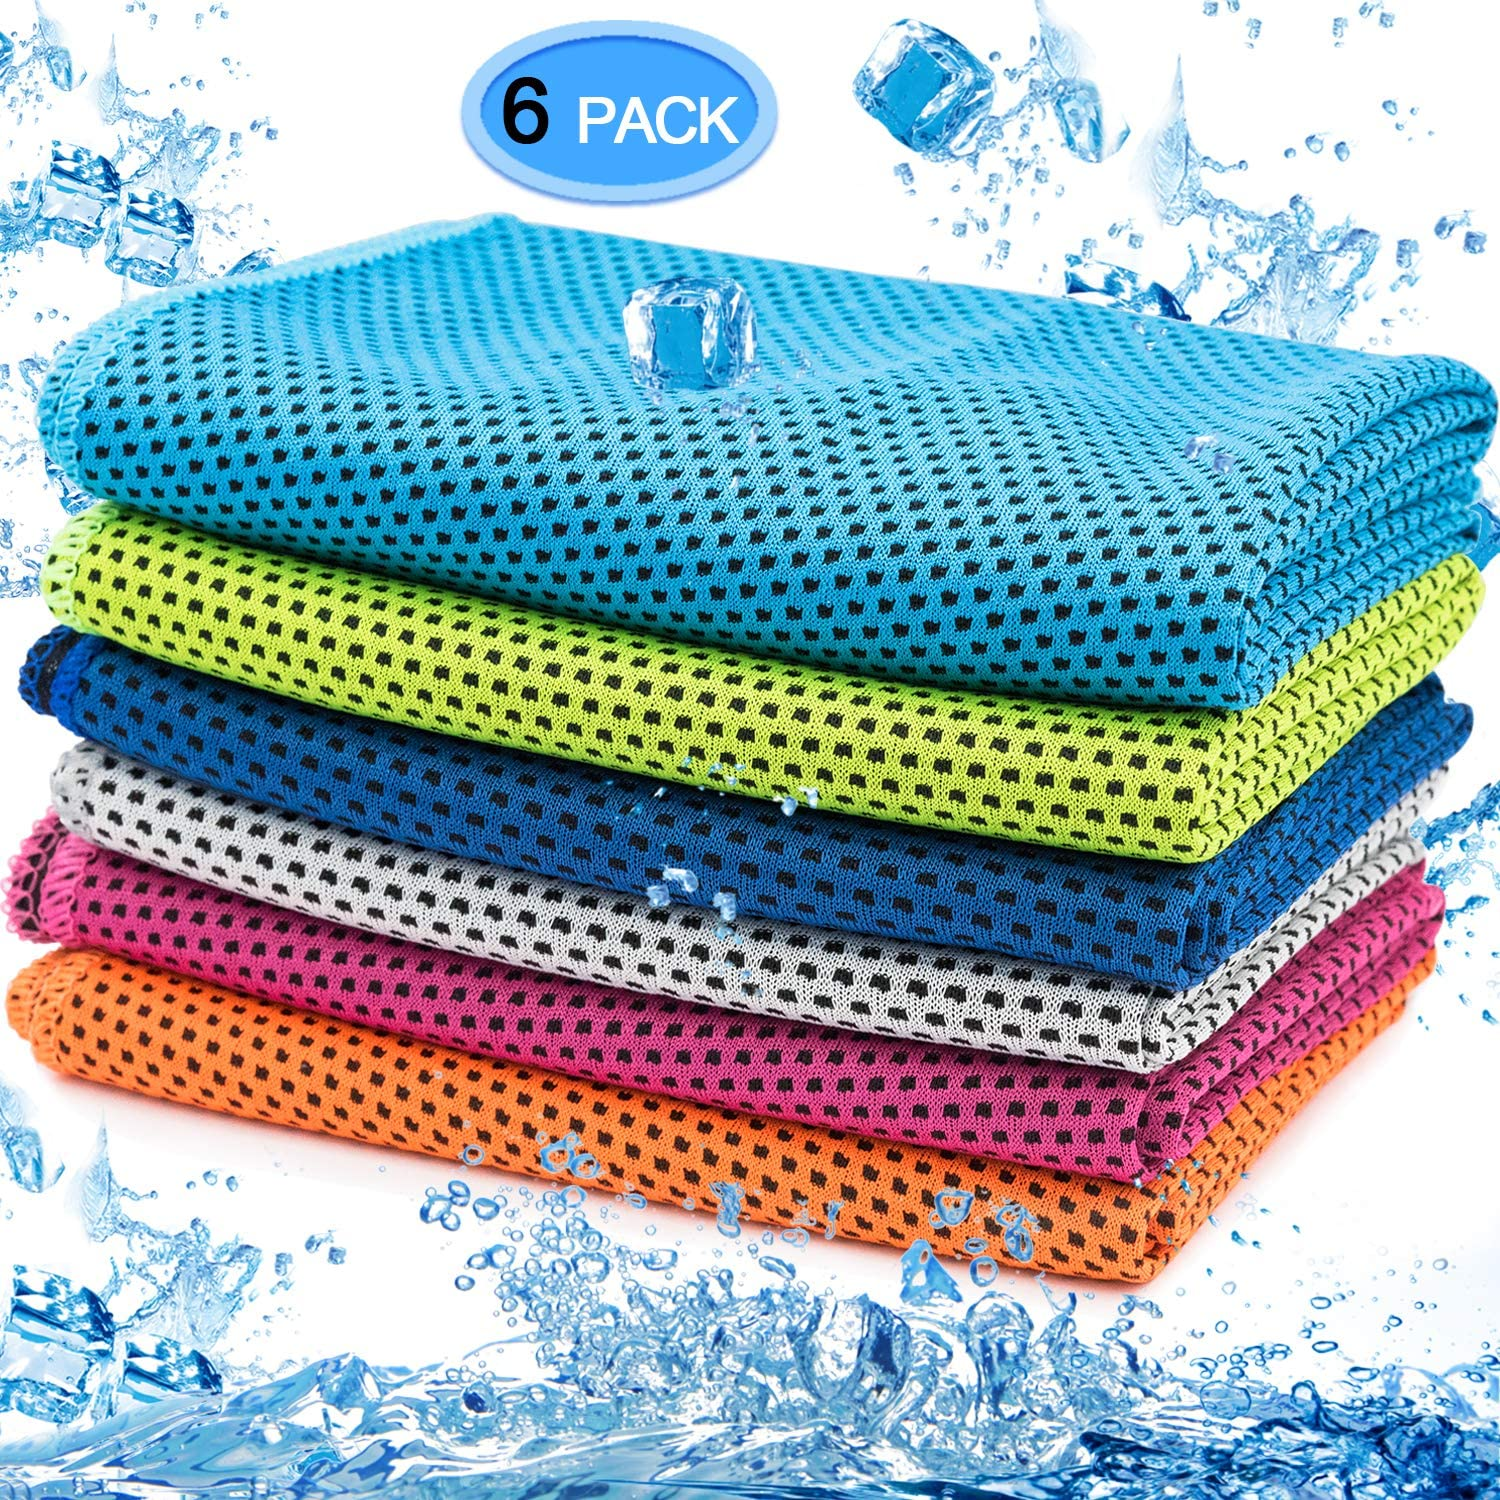 MENOLY 6 Pack Cooling Towel, Ice Towel Microfiber Towel Soft Breathable Chilly Towel for Sports, Gym, Yoga, Workout, Camping, Running, Fitness, Workout & More Activities